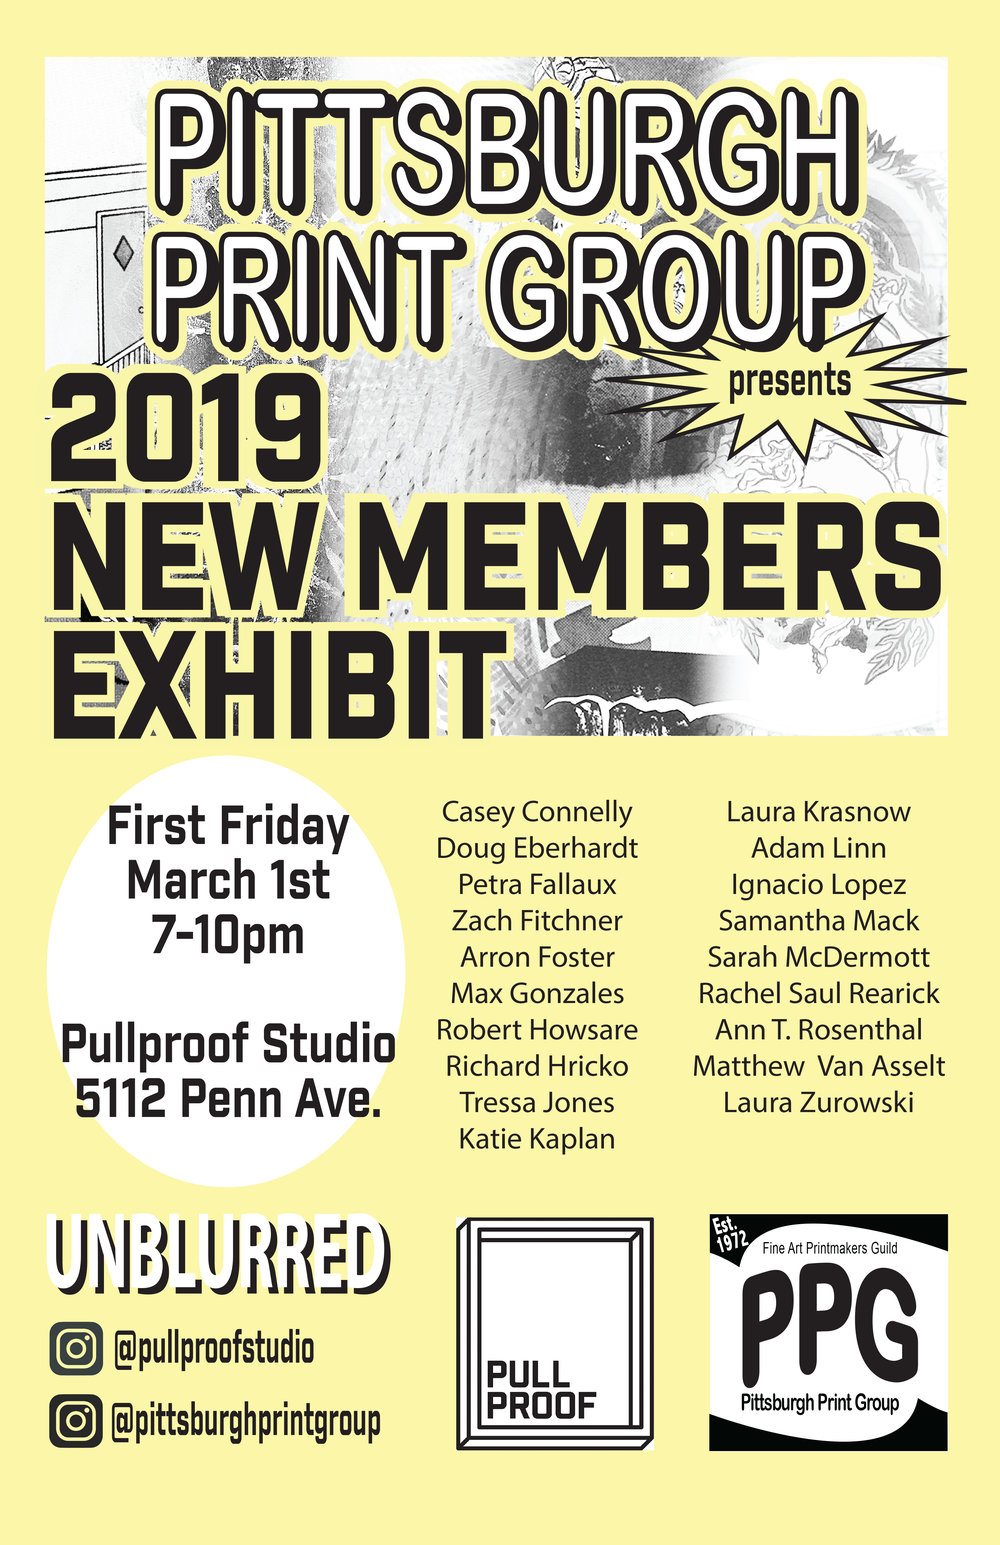 PPG presents 2019 New Members Exhibit - Pullproof Studio5112 Penn AvenuePittsburgh, PAJoin Pullproof Studio this upcoming First Friday, March 1, 7-10pm for PPG presents the 2019 New Members Exhibit, featuring a strong lineup of works by artists new to Pittsburgh Print Group—our city's rapidly growing printmakers association. This salon show features select traditional and experimental works by printmakers across the tri-state area. The Pittsburgh Print Group is delighted to welcome a large group of talented artists to its membership this year. This exhibition, which is free and open to the public, will feature artwork by Casey Connelly, Doug Eberhardt, Petra Fallaux, Zach Fitchner, Arron Foster, Max Emiliano Gonzales, Robert Howsare, Richard Hricko, Tressa Jones, Katie Kaplan, Laura Krasnow, Adam Linn, Ignacio Lopez, Samantha Mack, Sarah McDermott, Rachel Saul Rearick, Ann T. Rosenthal, Matthew Van Asselt, and Laura Zurowski.The opening reception will be part of Unblurred: First Fridays on Penn, a monthly art and entertainment crawl in Garfield. Come to the exhibit, and then enjoy the rest of the evening exploring the neighborhood and its offerings.Take a look at some sneak peaks of work on view below!